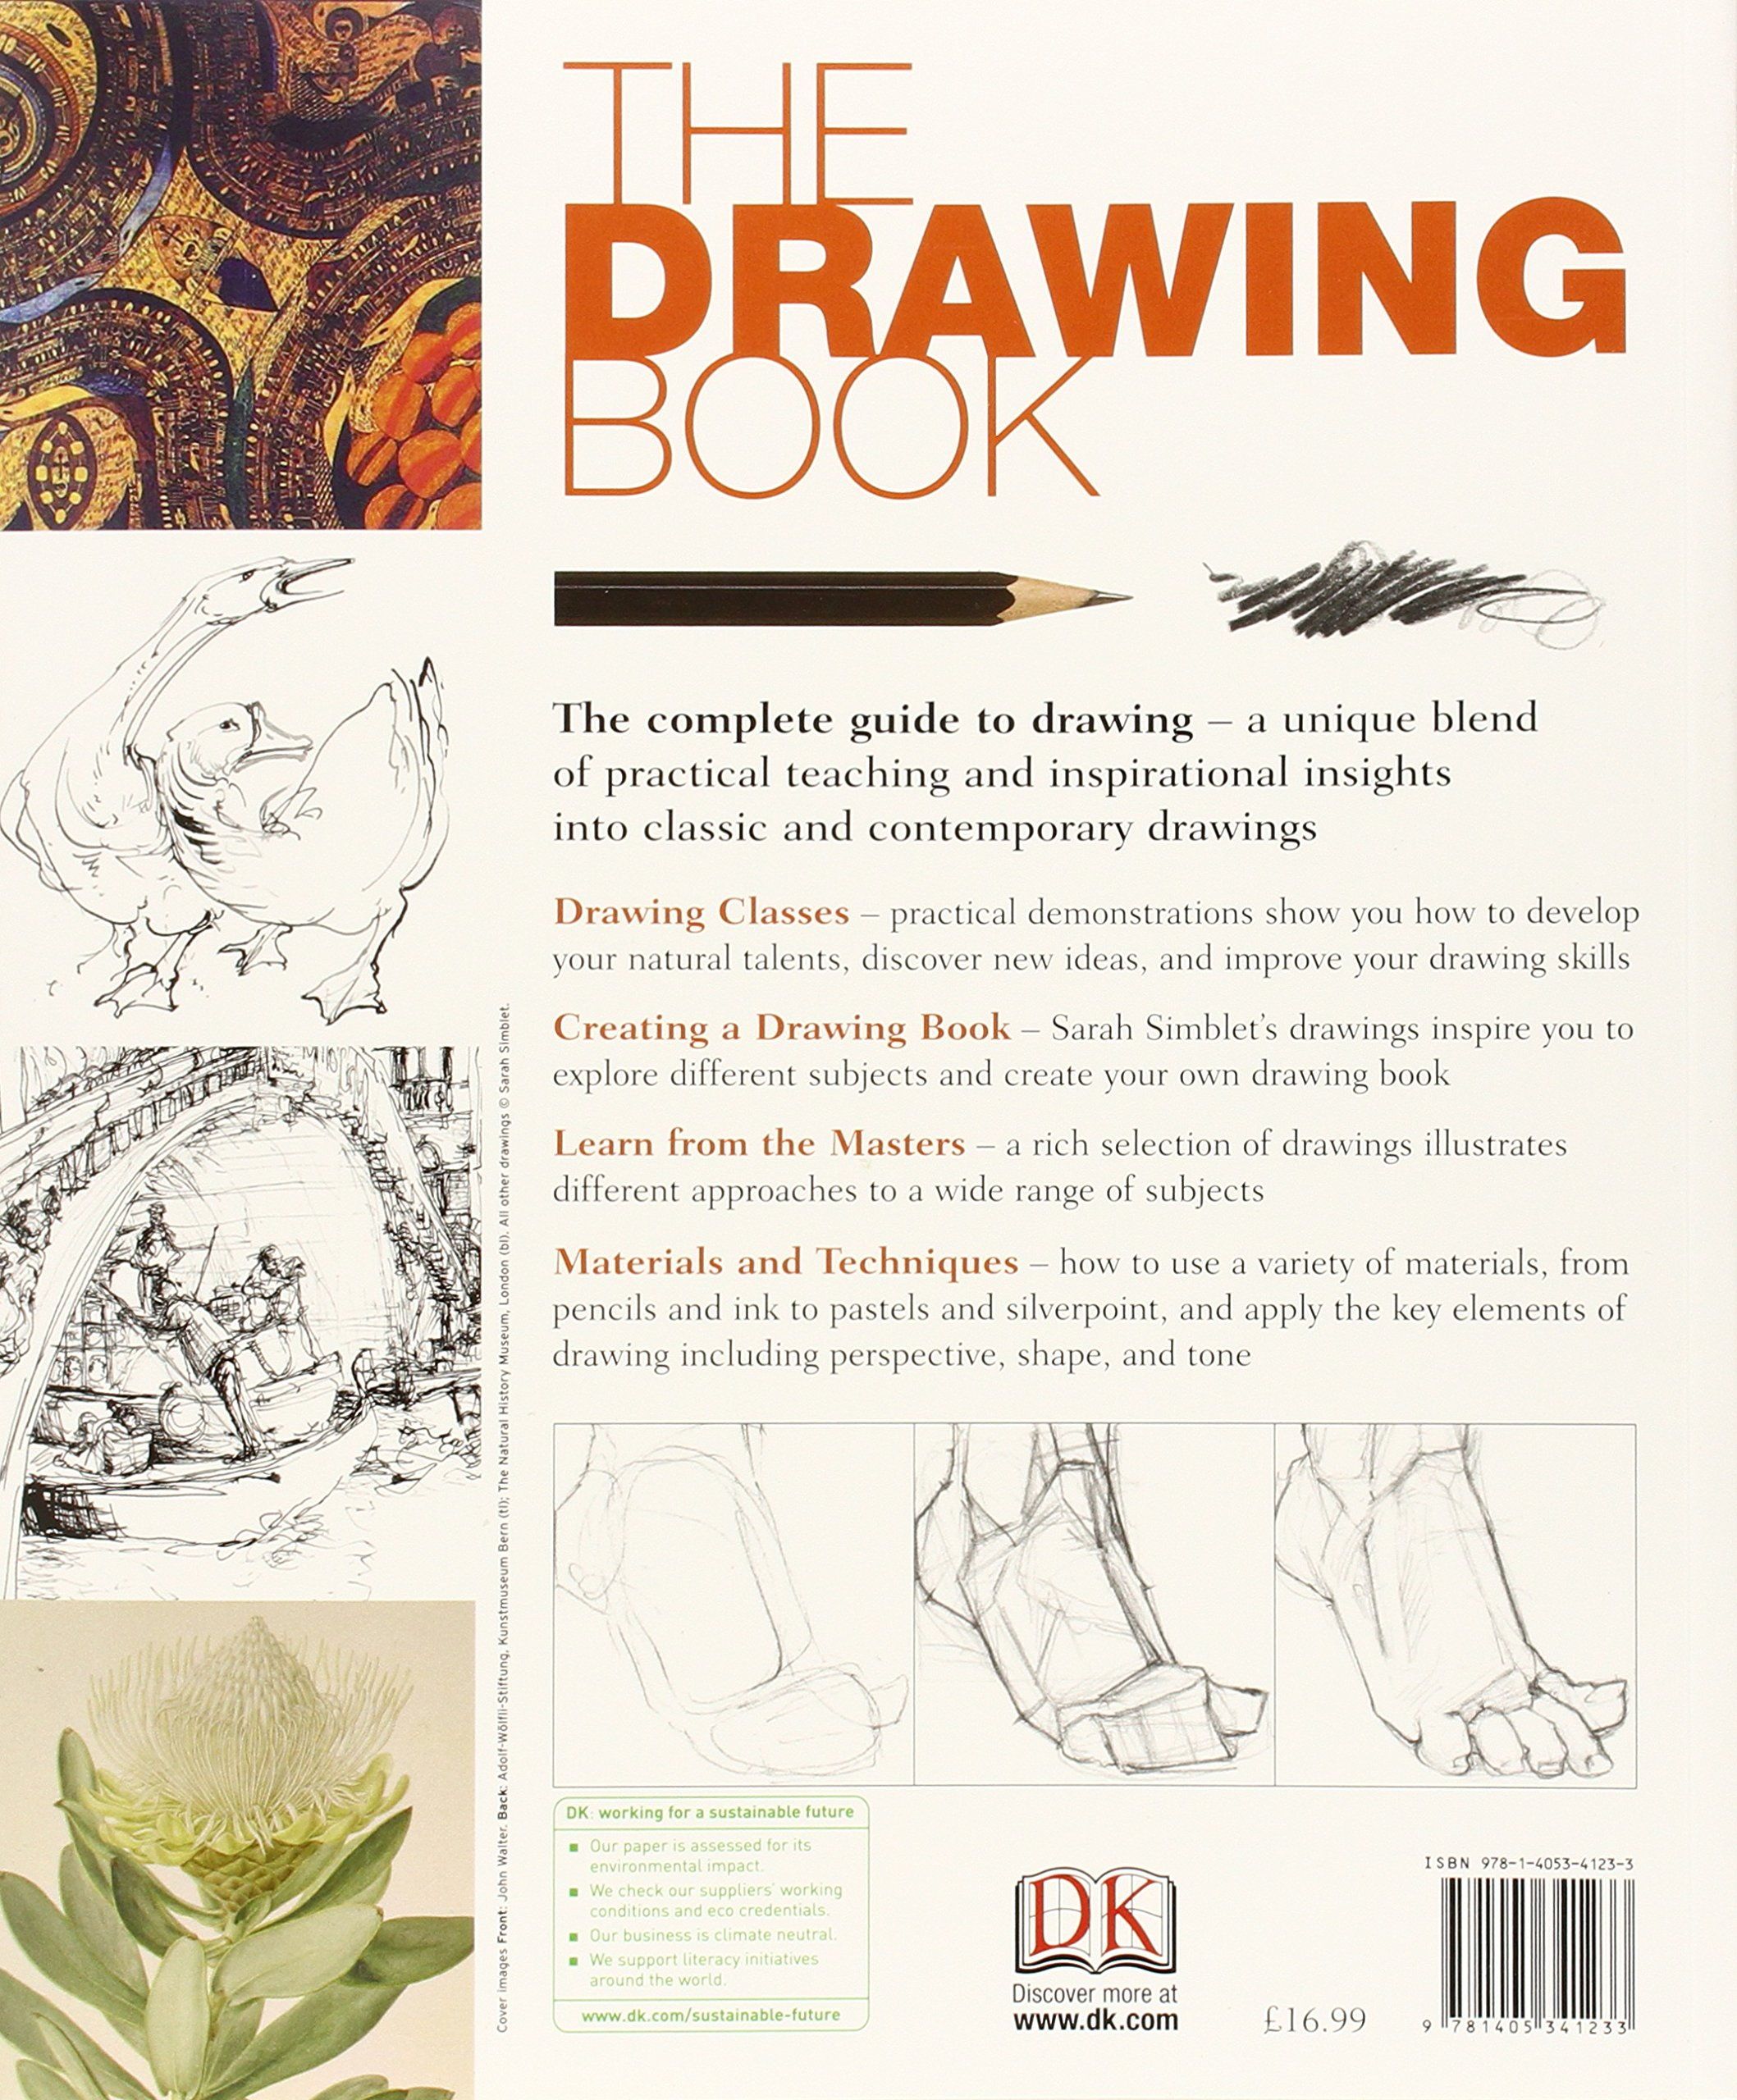 The Drawing Book: An Innovative, Practical Approach to Drawing the